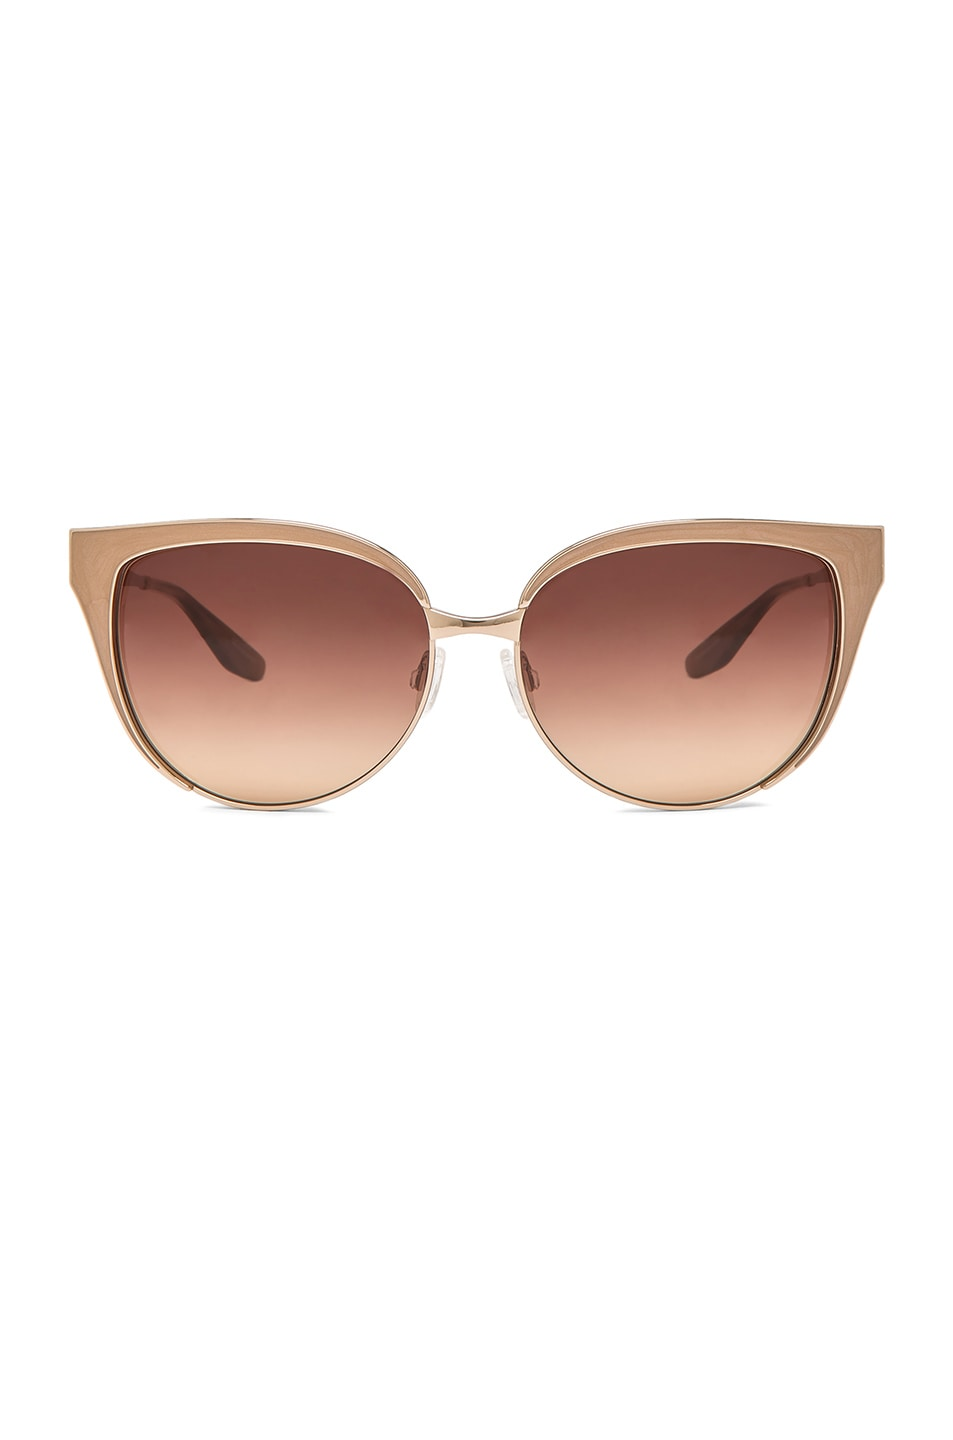 056bedf1f3 Image 1 of Barton Perreira Valerie Sunglasses in Gold